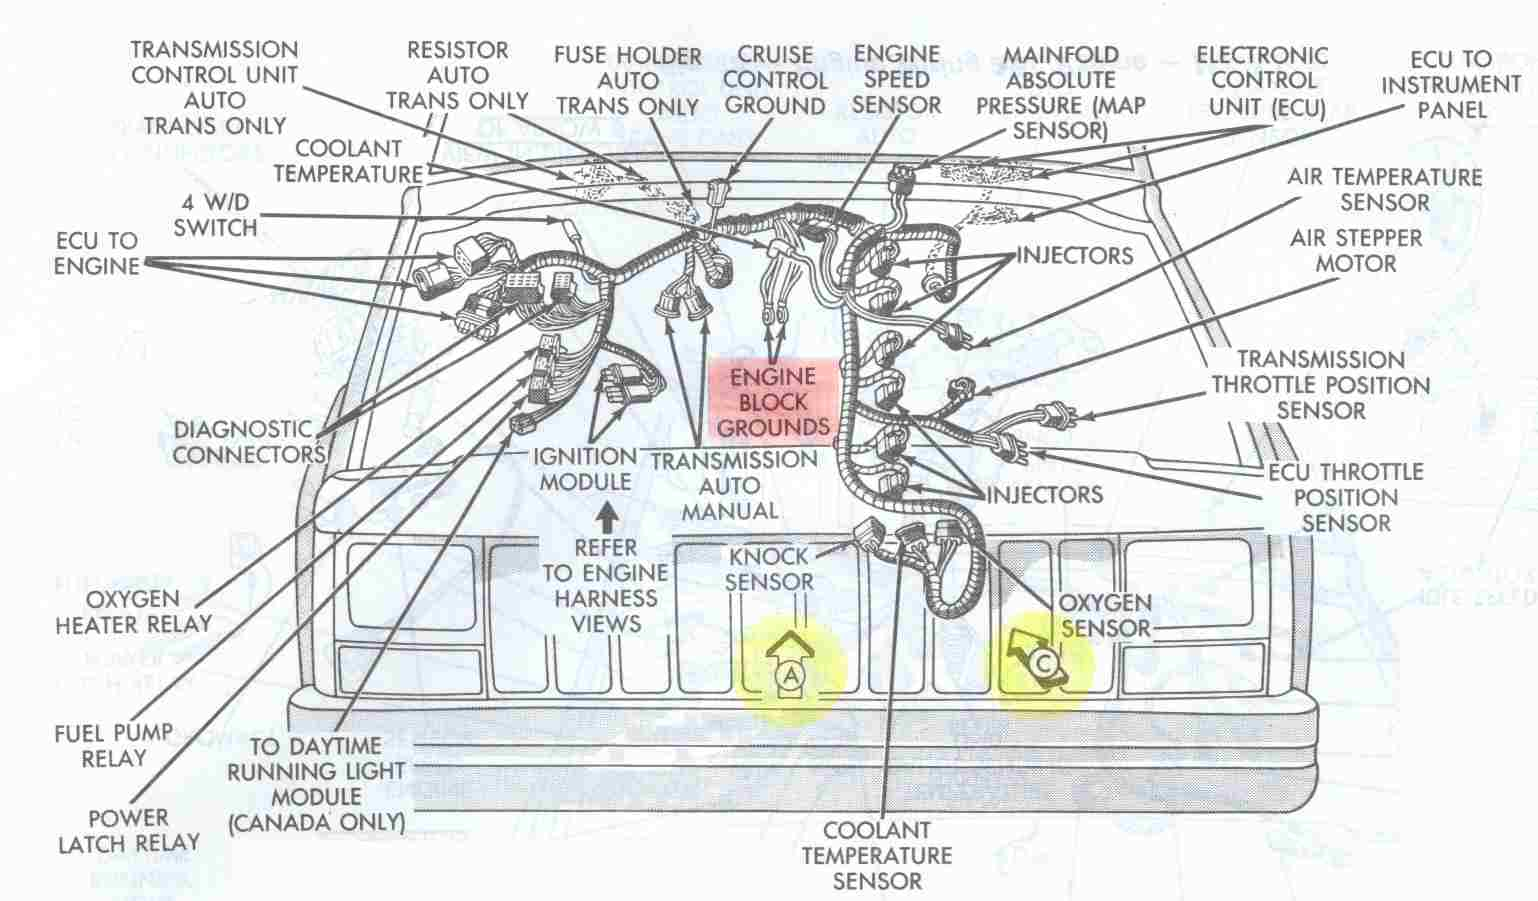 Jeep cherokee electrical diagnosing erratic behavior of engine engine bay schematic showing major electrical ground points for 40l jeep cherokee engines asfbconference2016 Image collections